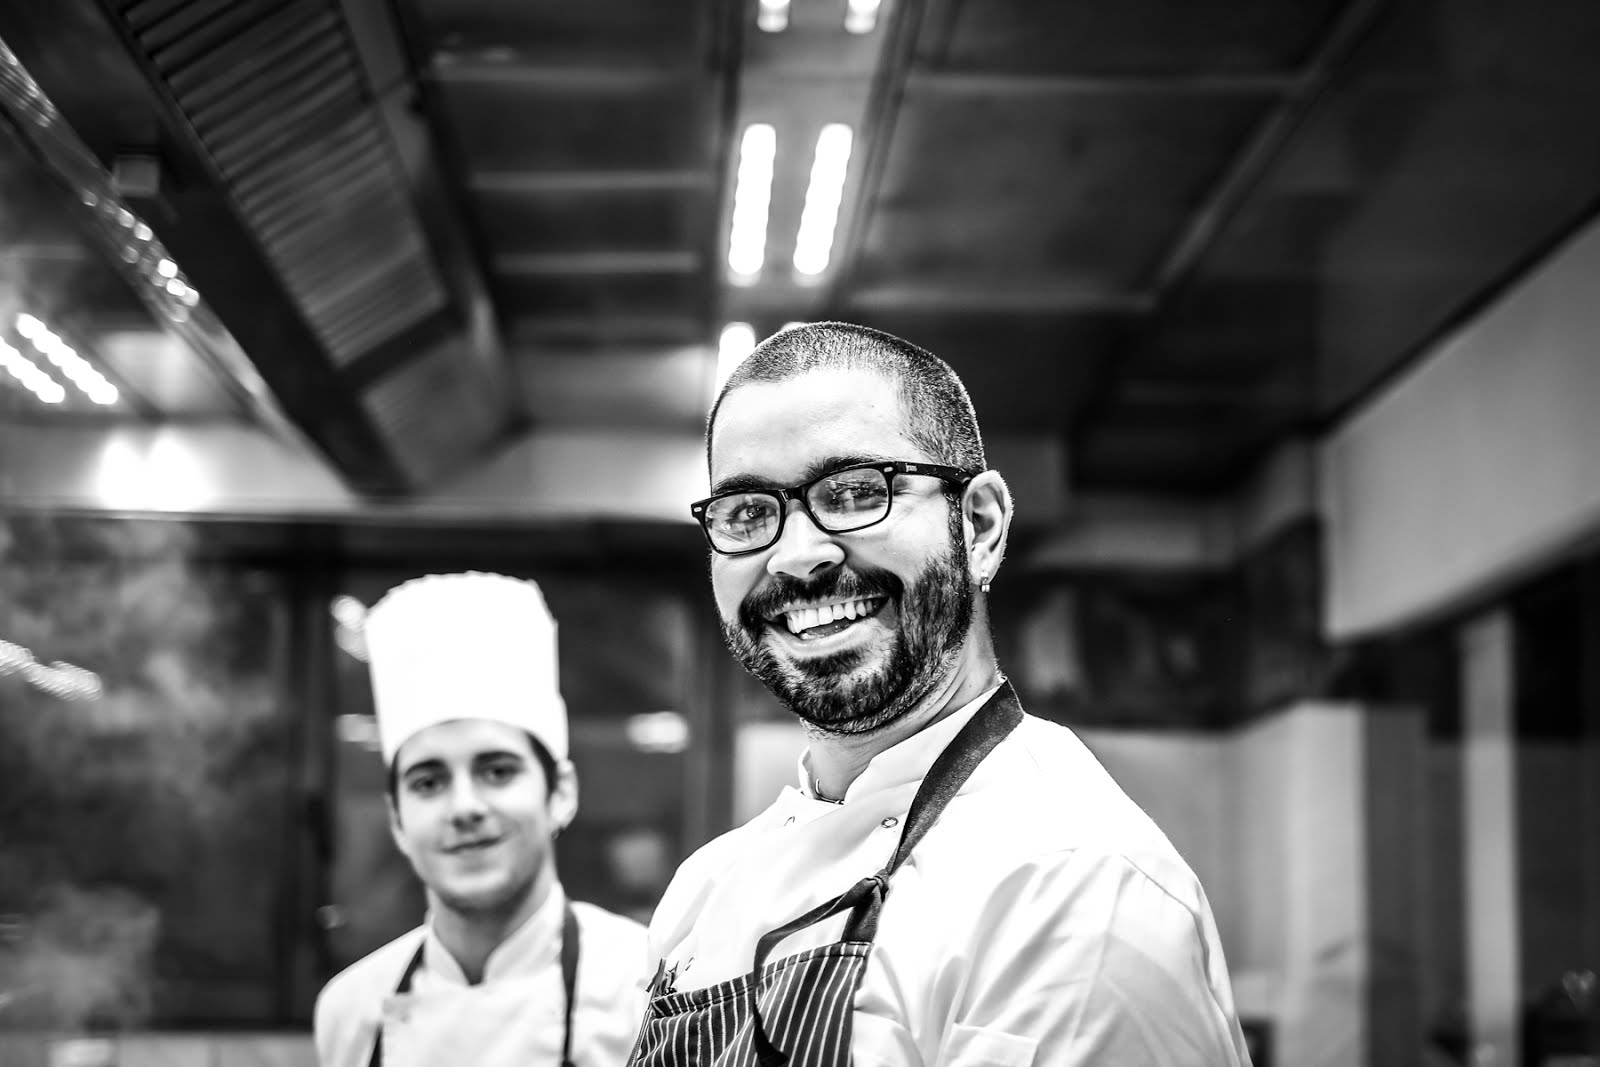 Chef, staff, volti, sorrisi